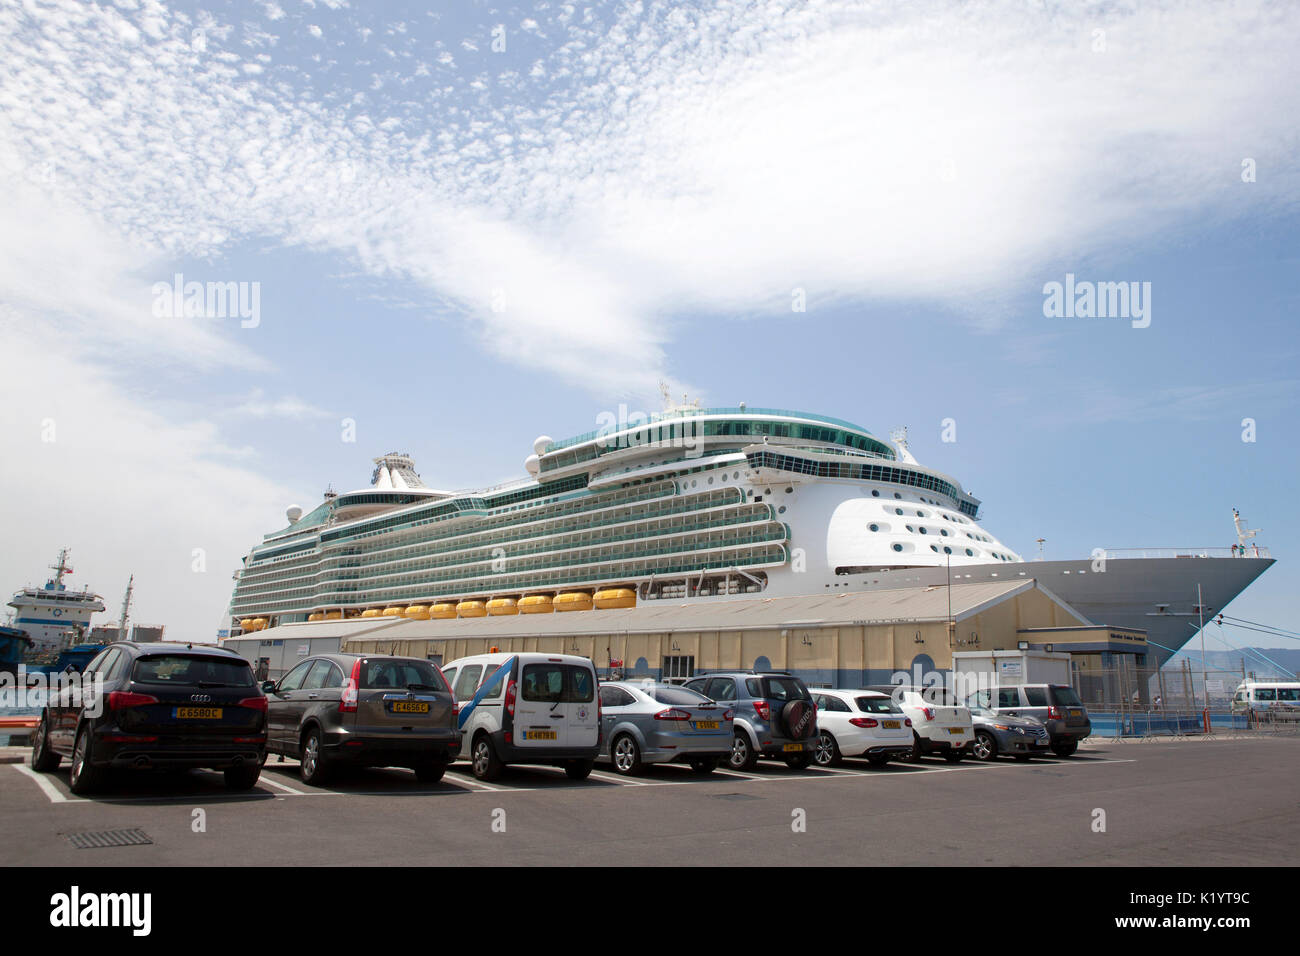 Gibraltar Cruise Terminal at the northern end of the Western Arm of the North Mole at Gibraltar Harbour - Stock Image